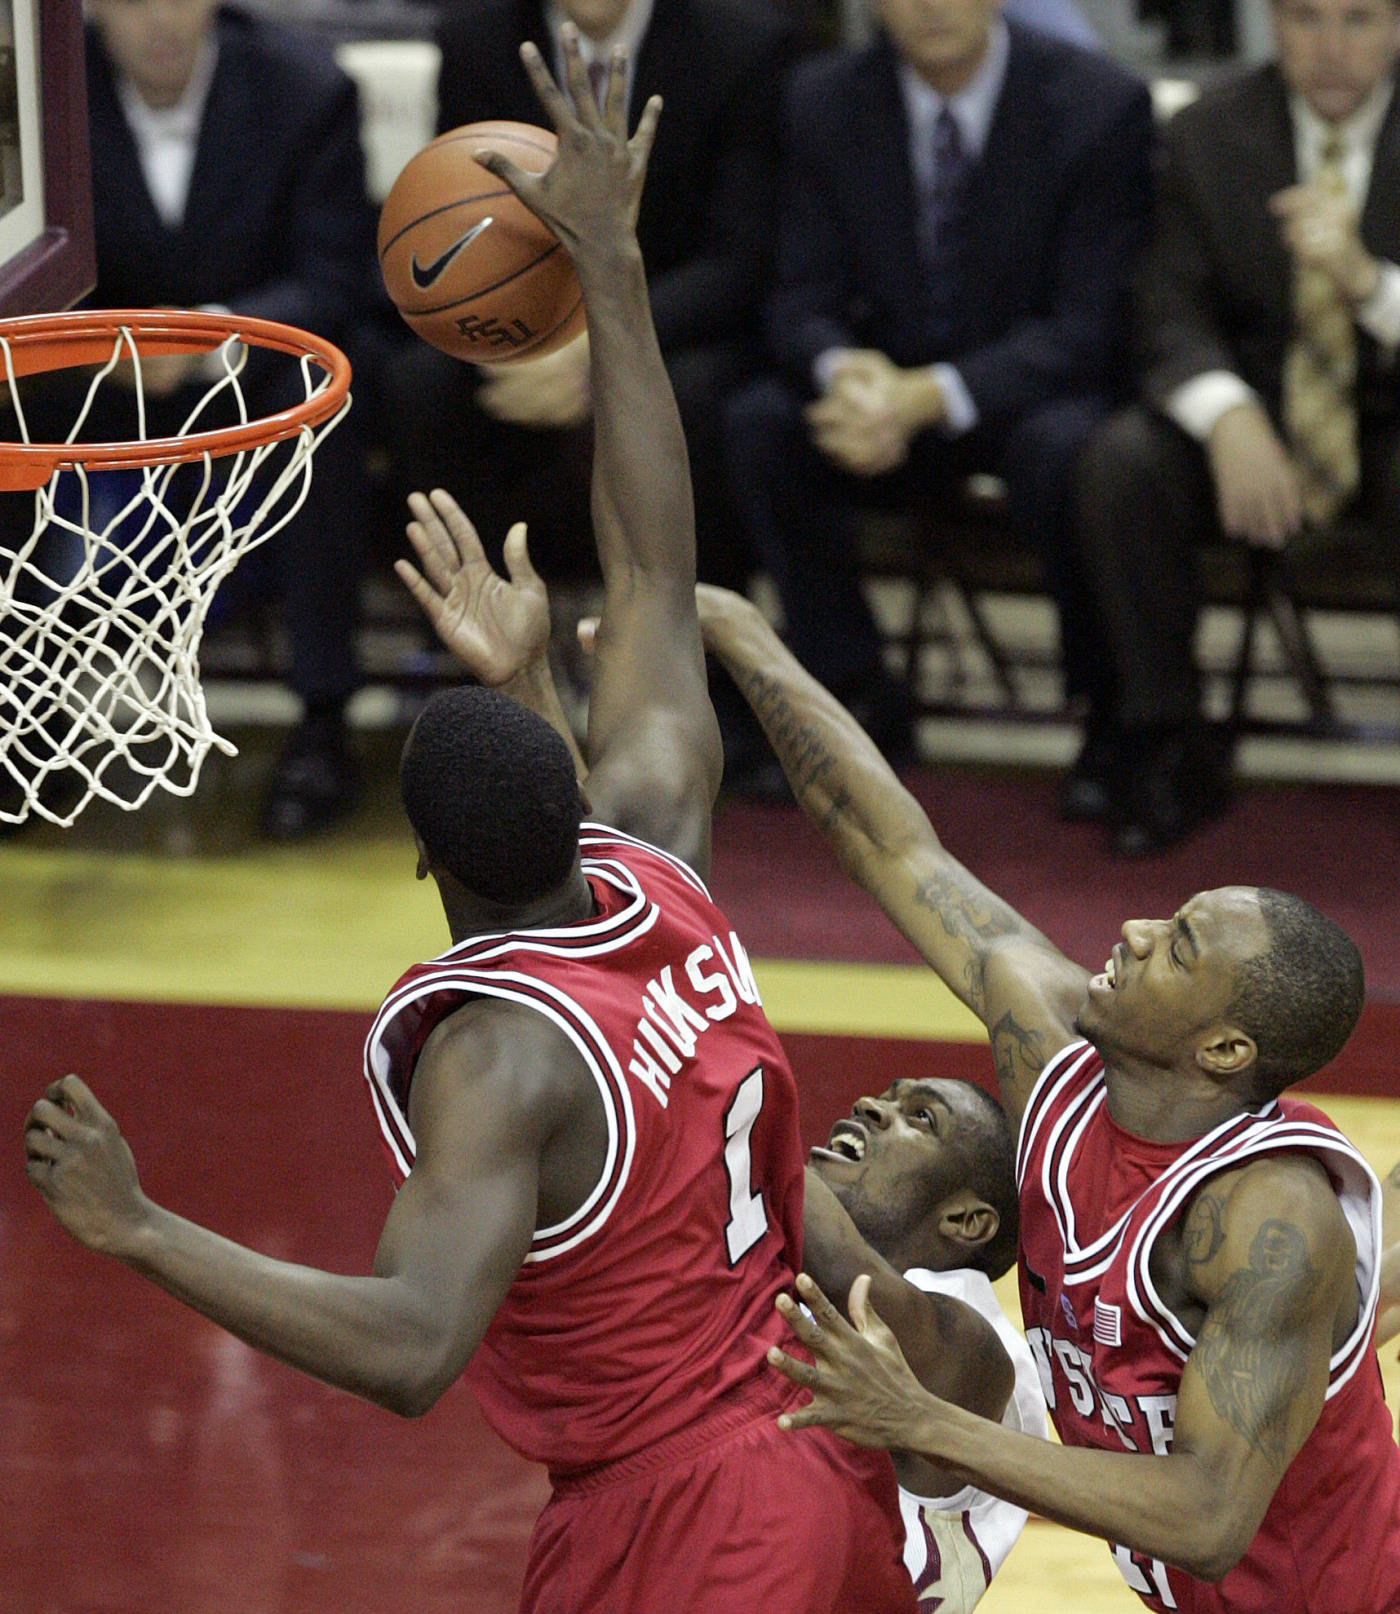 Florida State's Jason Rich is sandwiched by the defense of North Carolina State's J J Hickson, left and Gavin Grant in the first half of a college basketball game on Saturday, Jan. 26, 2008 in Tallahassee, Fla.